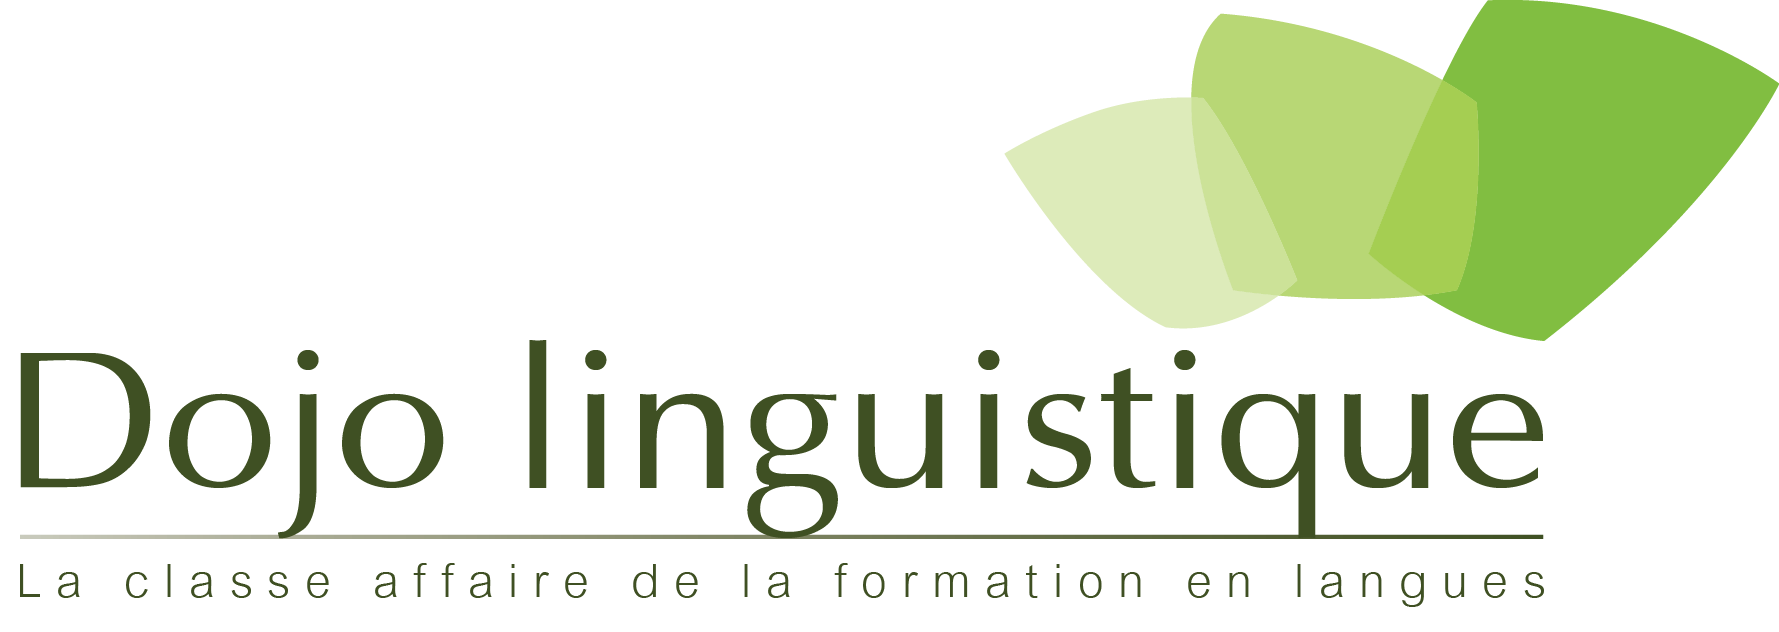 Dojo linguistique